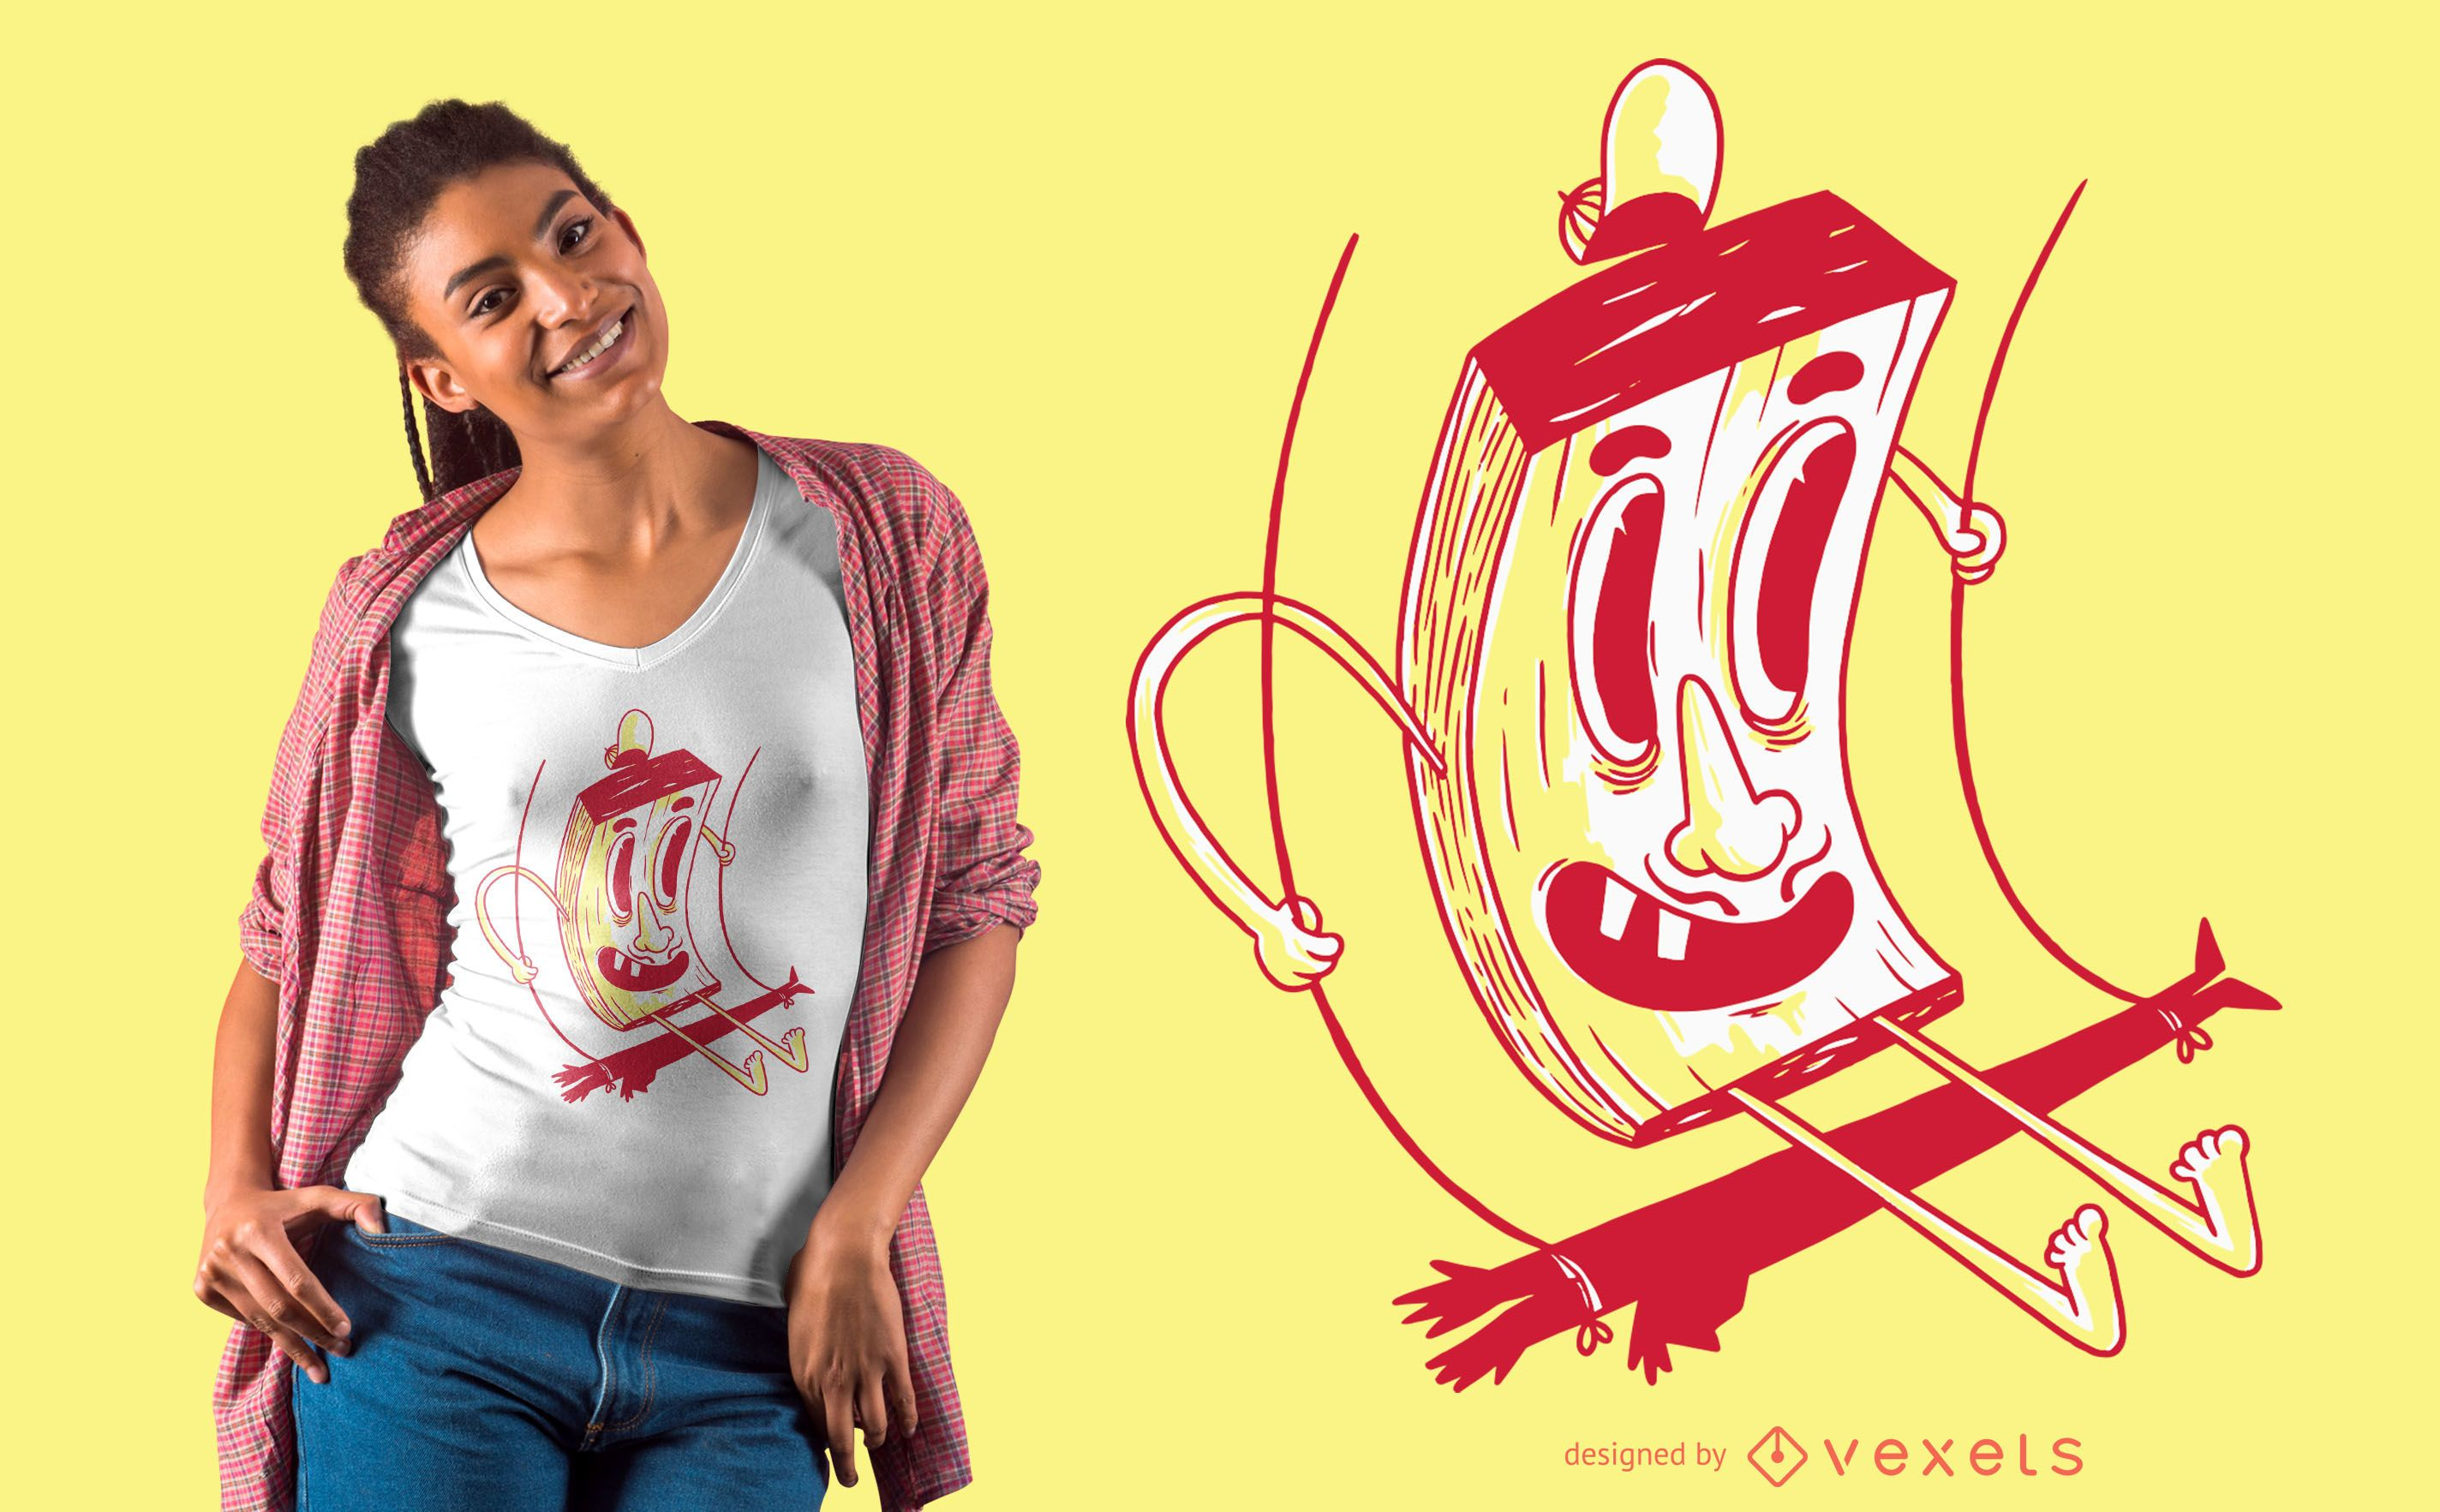 Character on Swing T-shirt Design